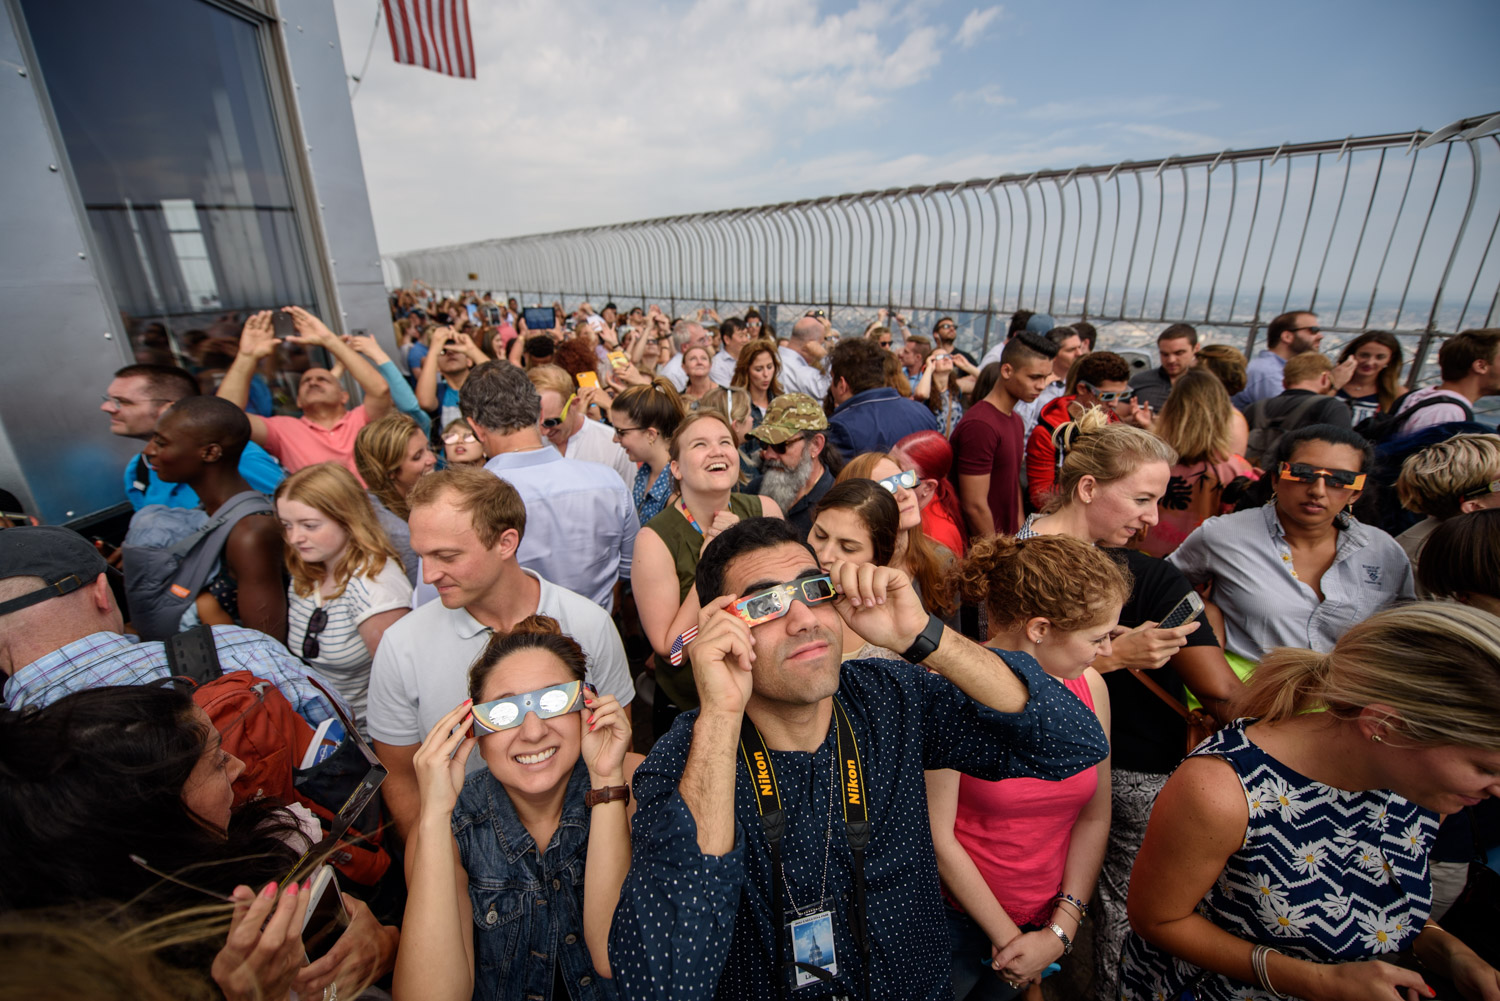 <div class='meta'><div class='origin-logo' data-origin='WABC'></div><span class='caption-text' data-credit='WABC Photo/Mike Waterhouse'>Dozens of people watched the 2017 solar eclipse from the 86th floor of the Empire State Building on Aug. 21, 2017.</span></div>